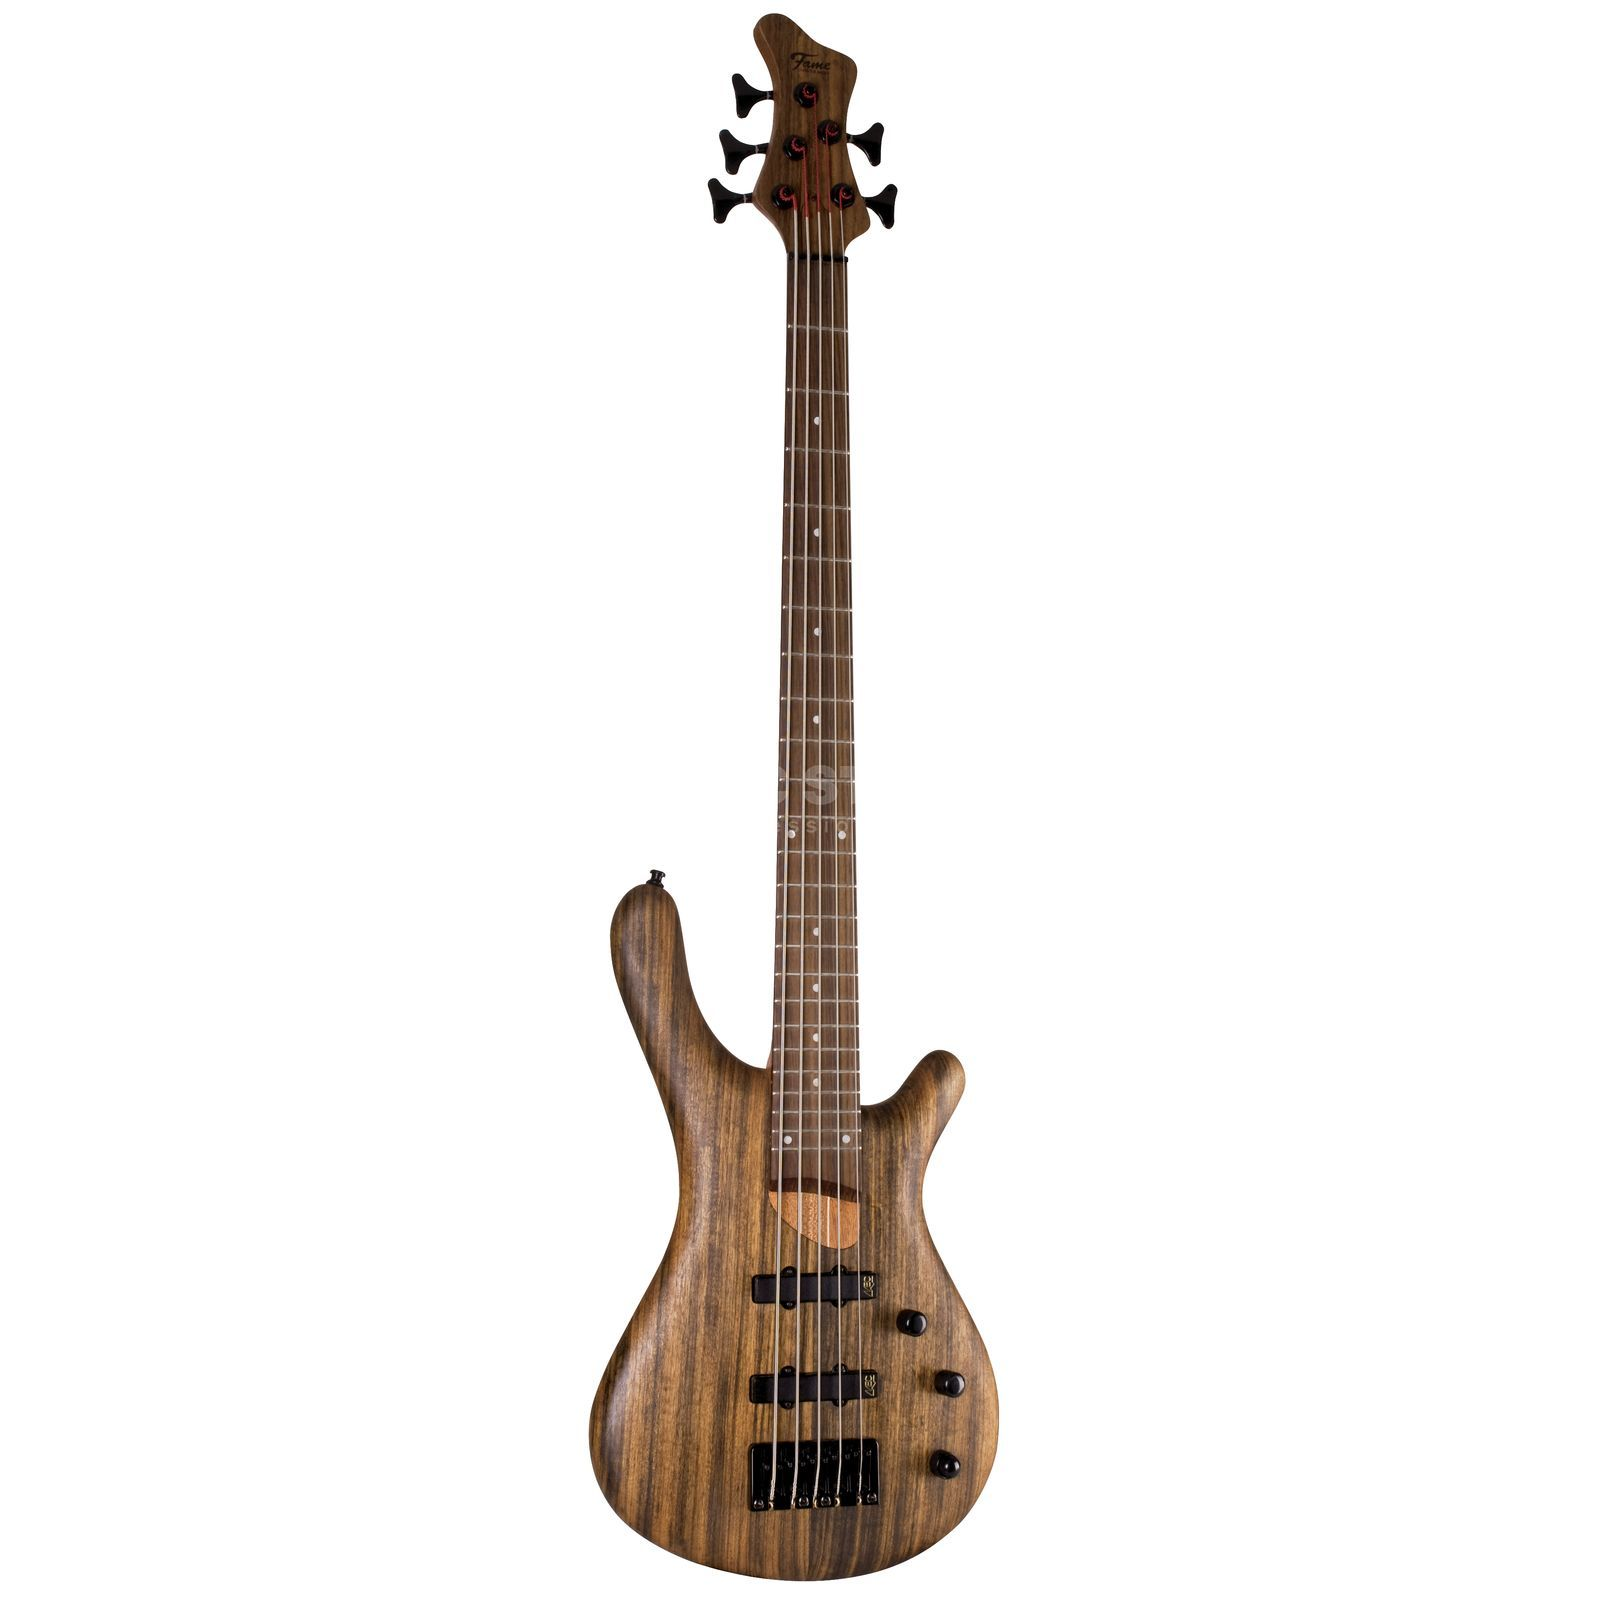 Fame Baphomet 5 Natural 5-String E- Bass Guitar, Natural Oil Produktbillede